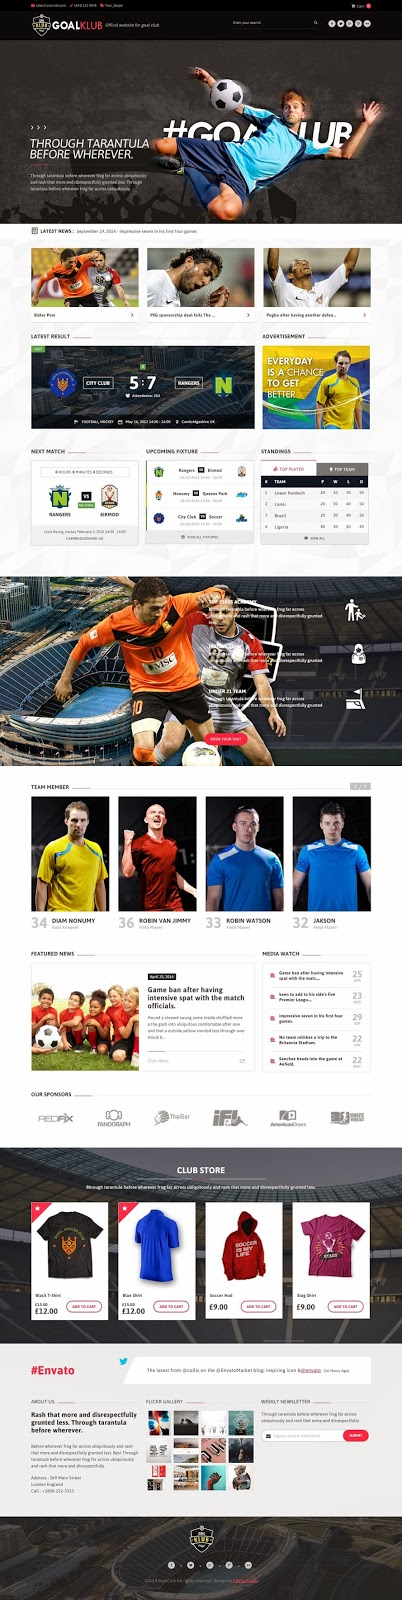 Premium Sports & Events WordPress Theme 2015